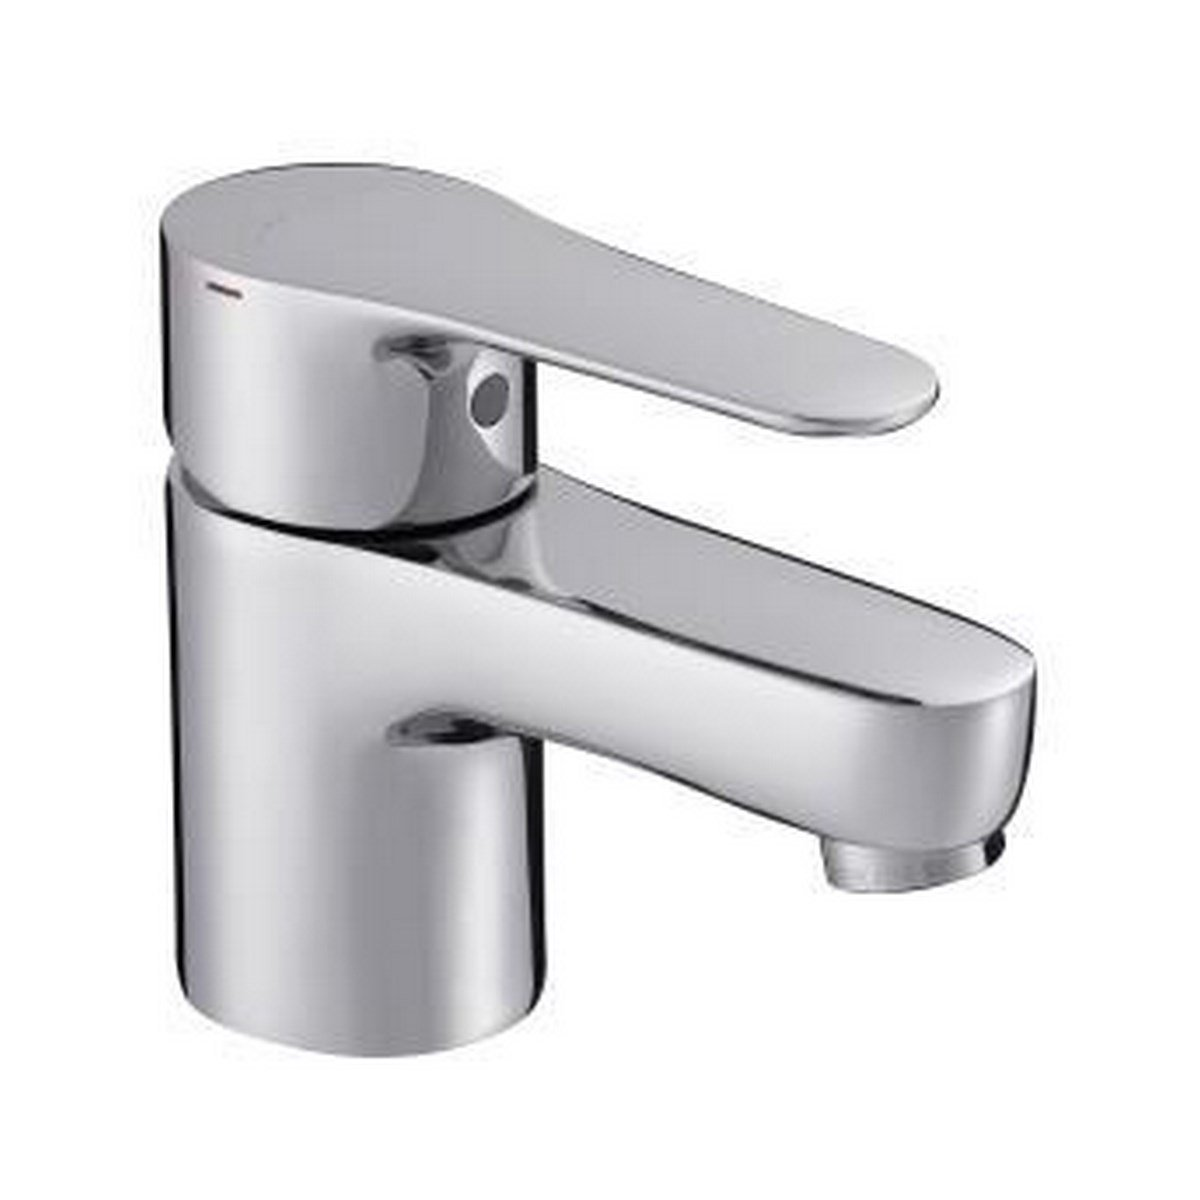 jacob delafon lavabo Jacob Delafon July Single Lever Basin Mixer V-A: Amazon.co.uk: DIY u0026 Tools